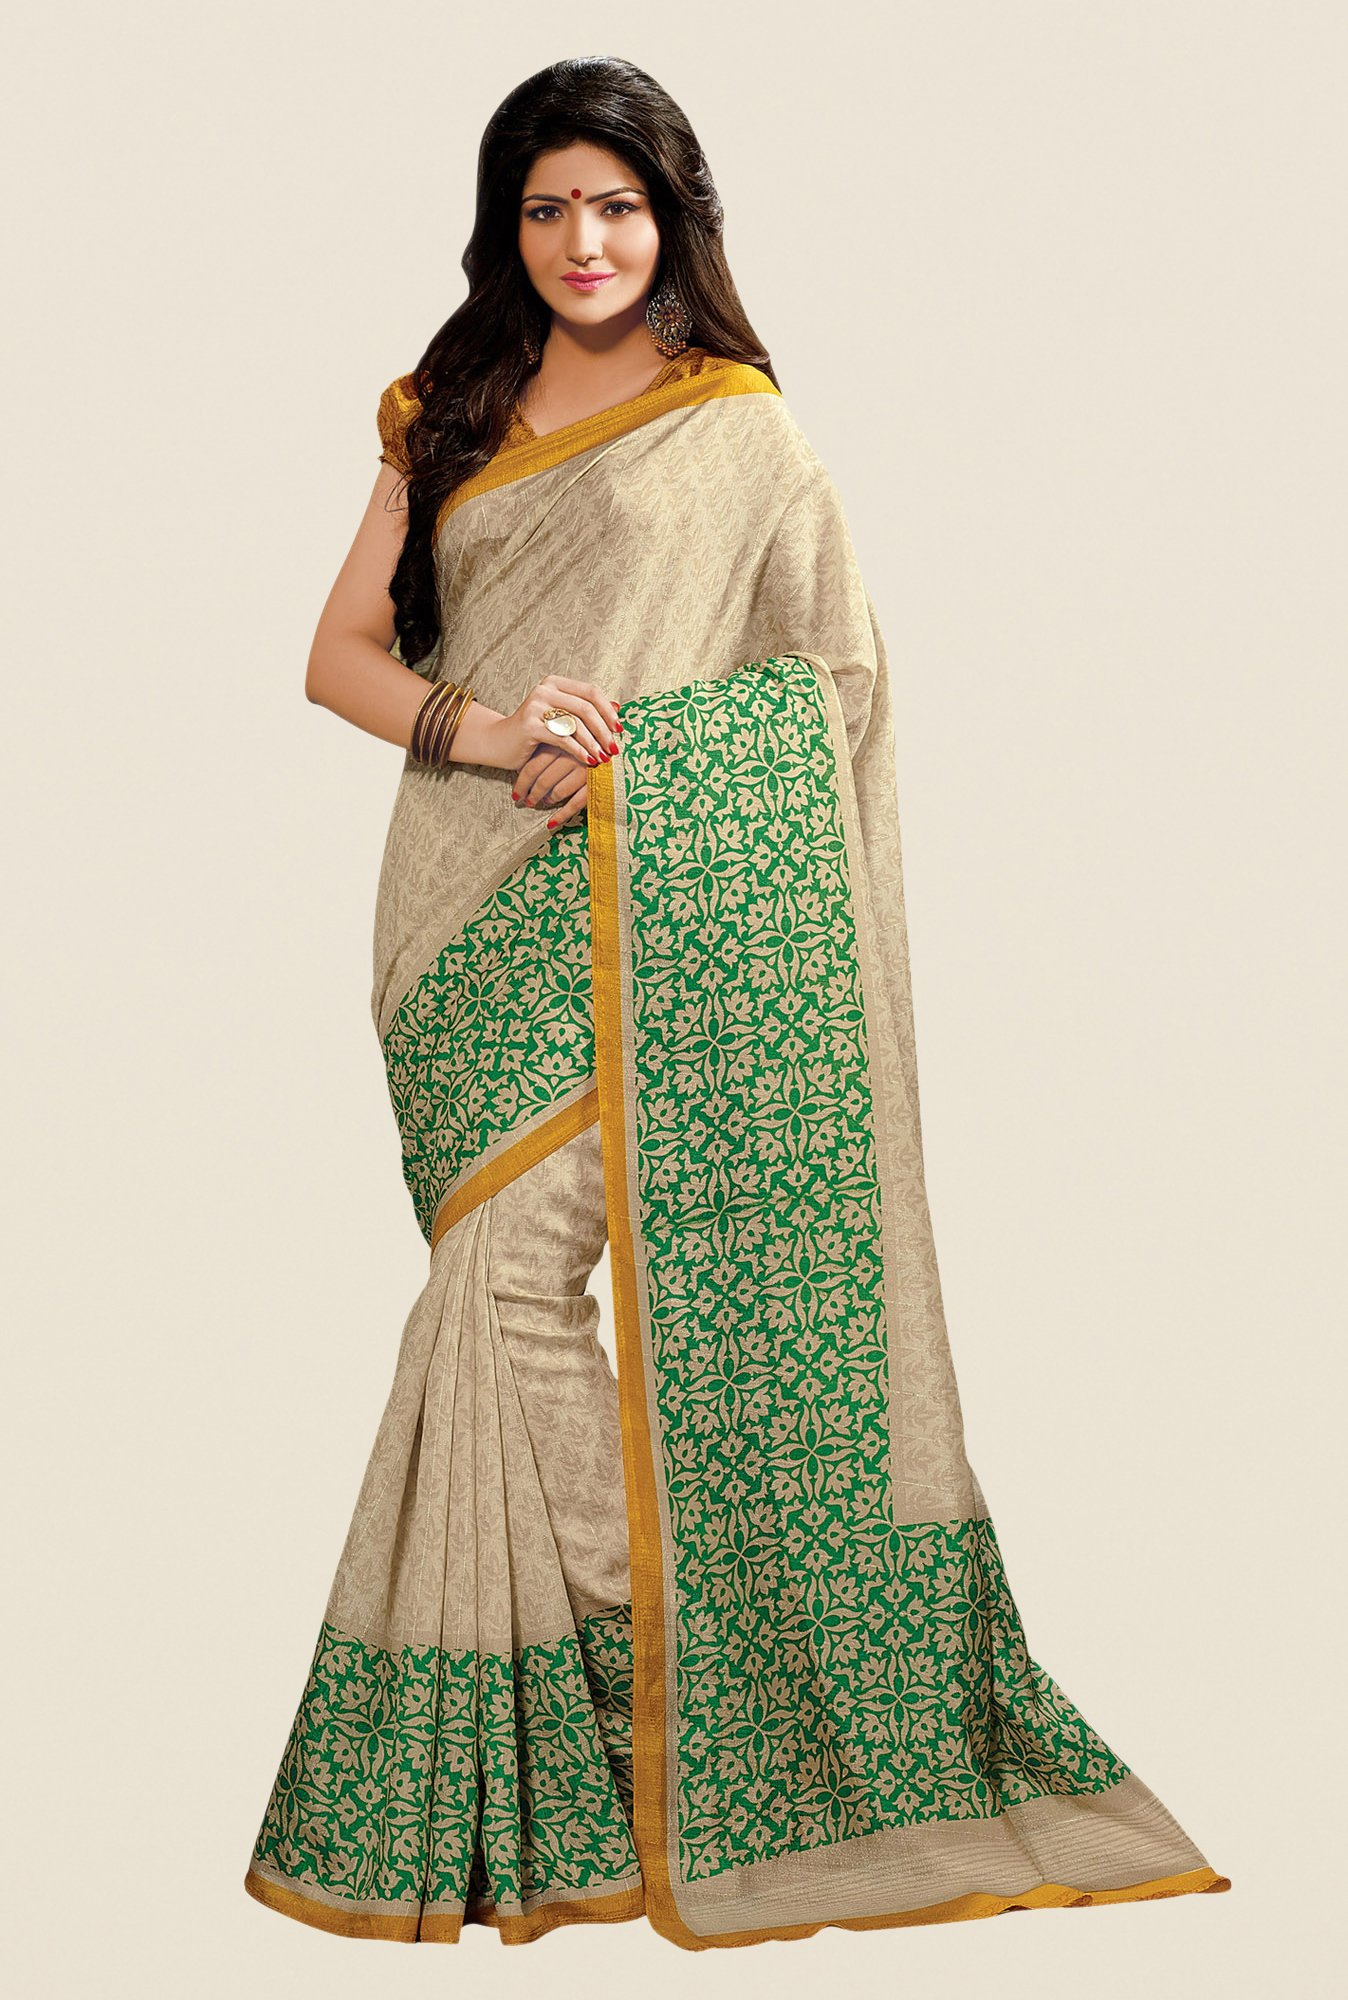 Shonaya Beige & Green Cotton Silk Printed Saree